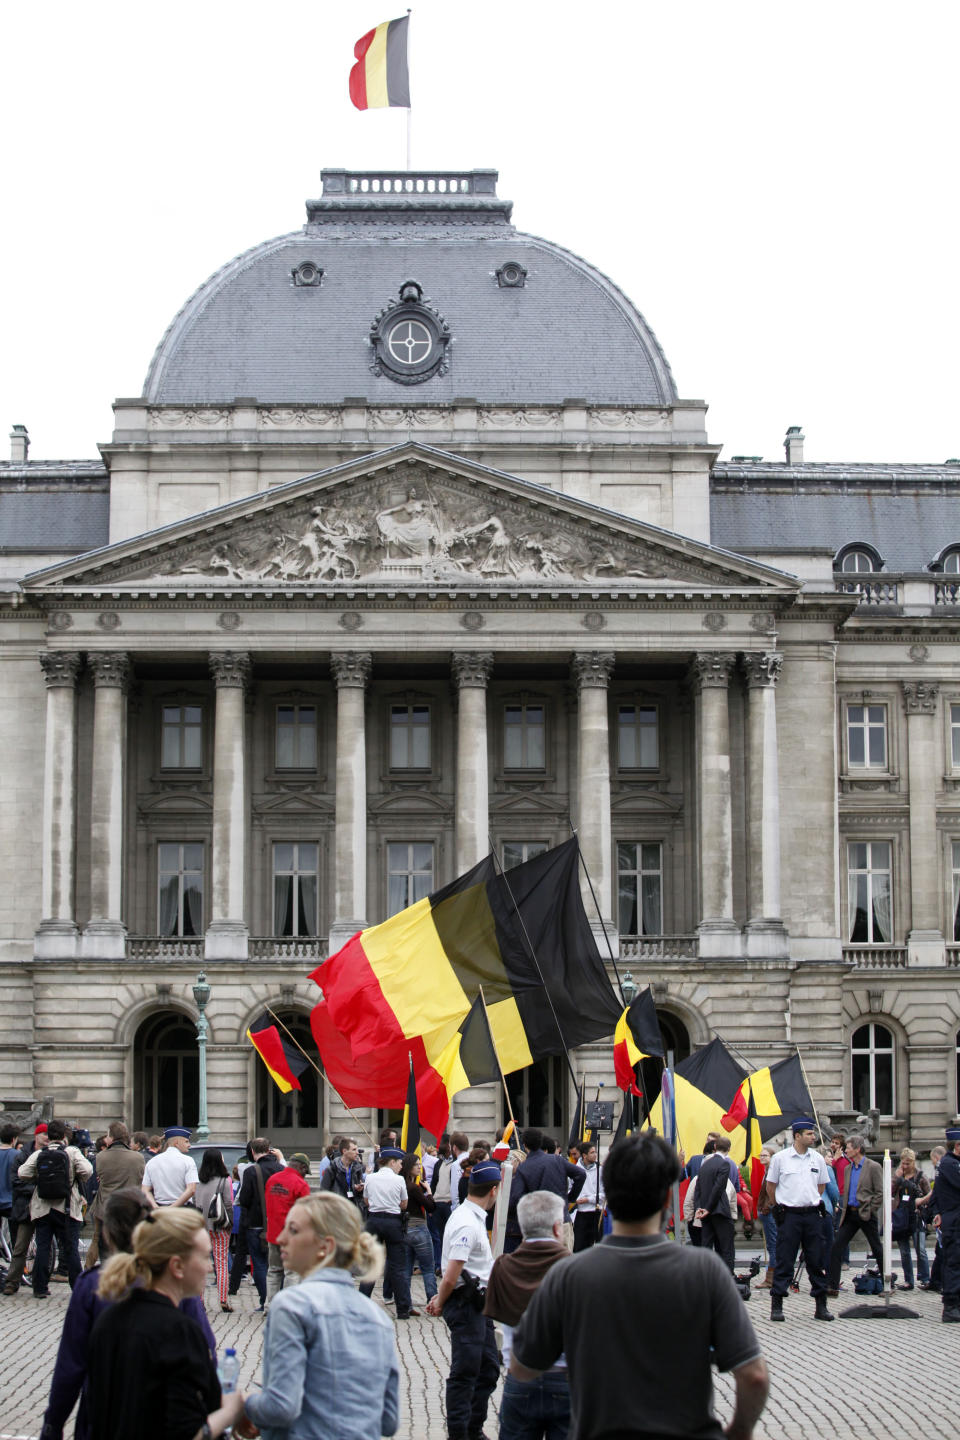 People wave Belgian flags in front of the Royal Palace downtown Brussels, Wednesday, July 3, 2013. Belgian King Albert has unexpectedly announced that he will step down in favor of his son, Crown Prince Philippe. on July 21, 2013. (AP Photo/Francois Walschaerts)